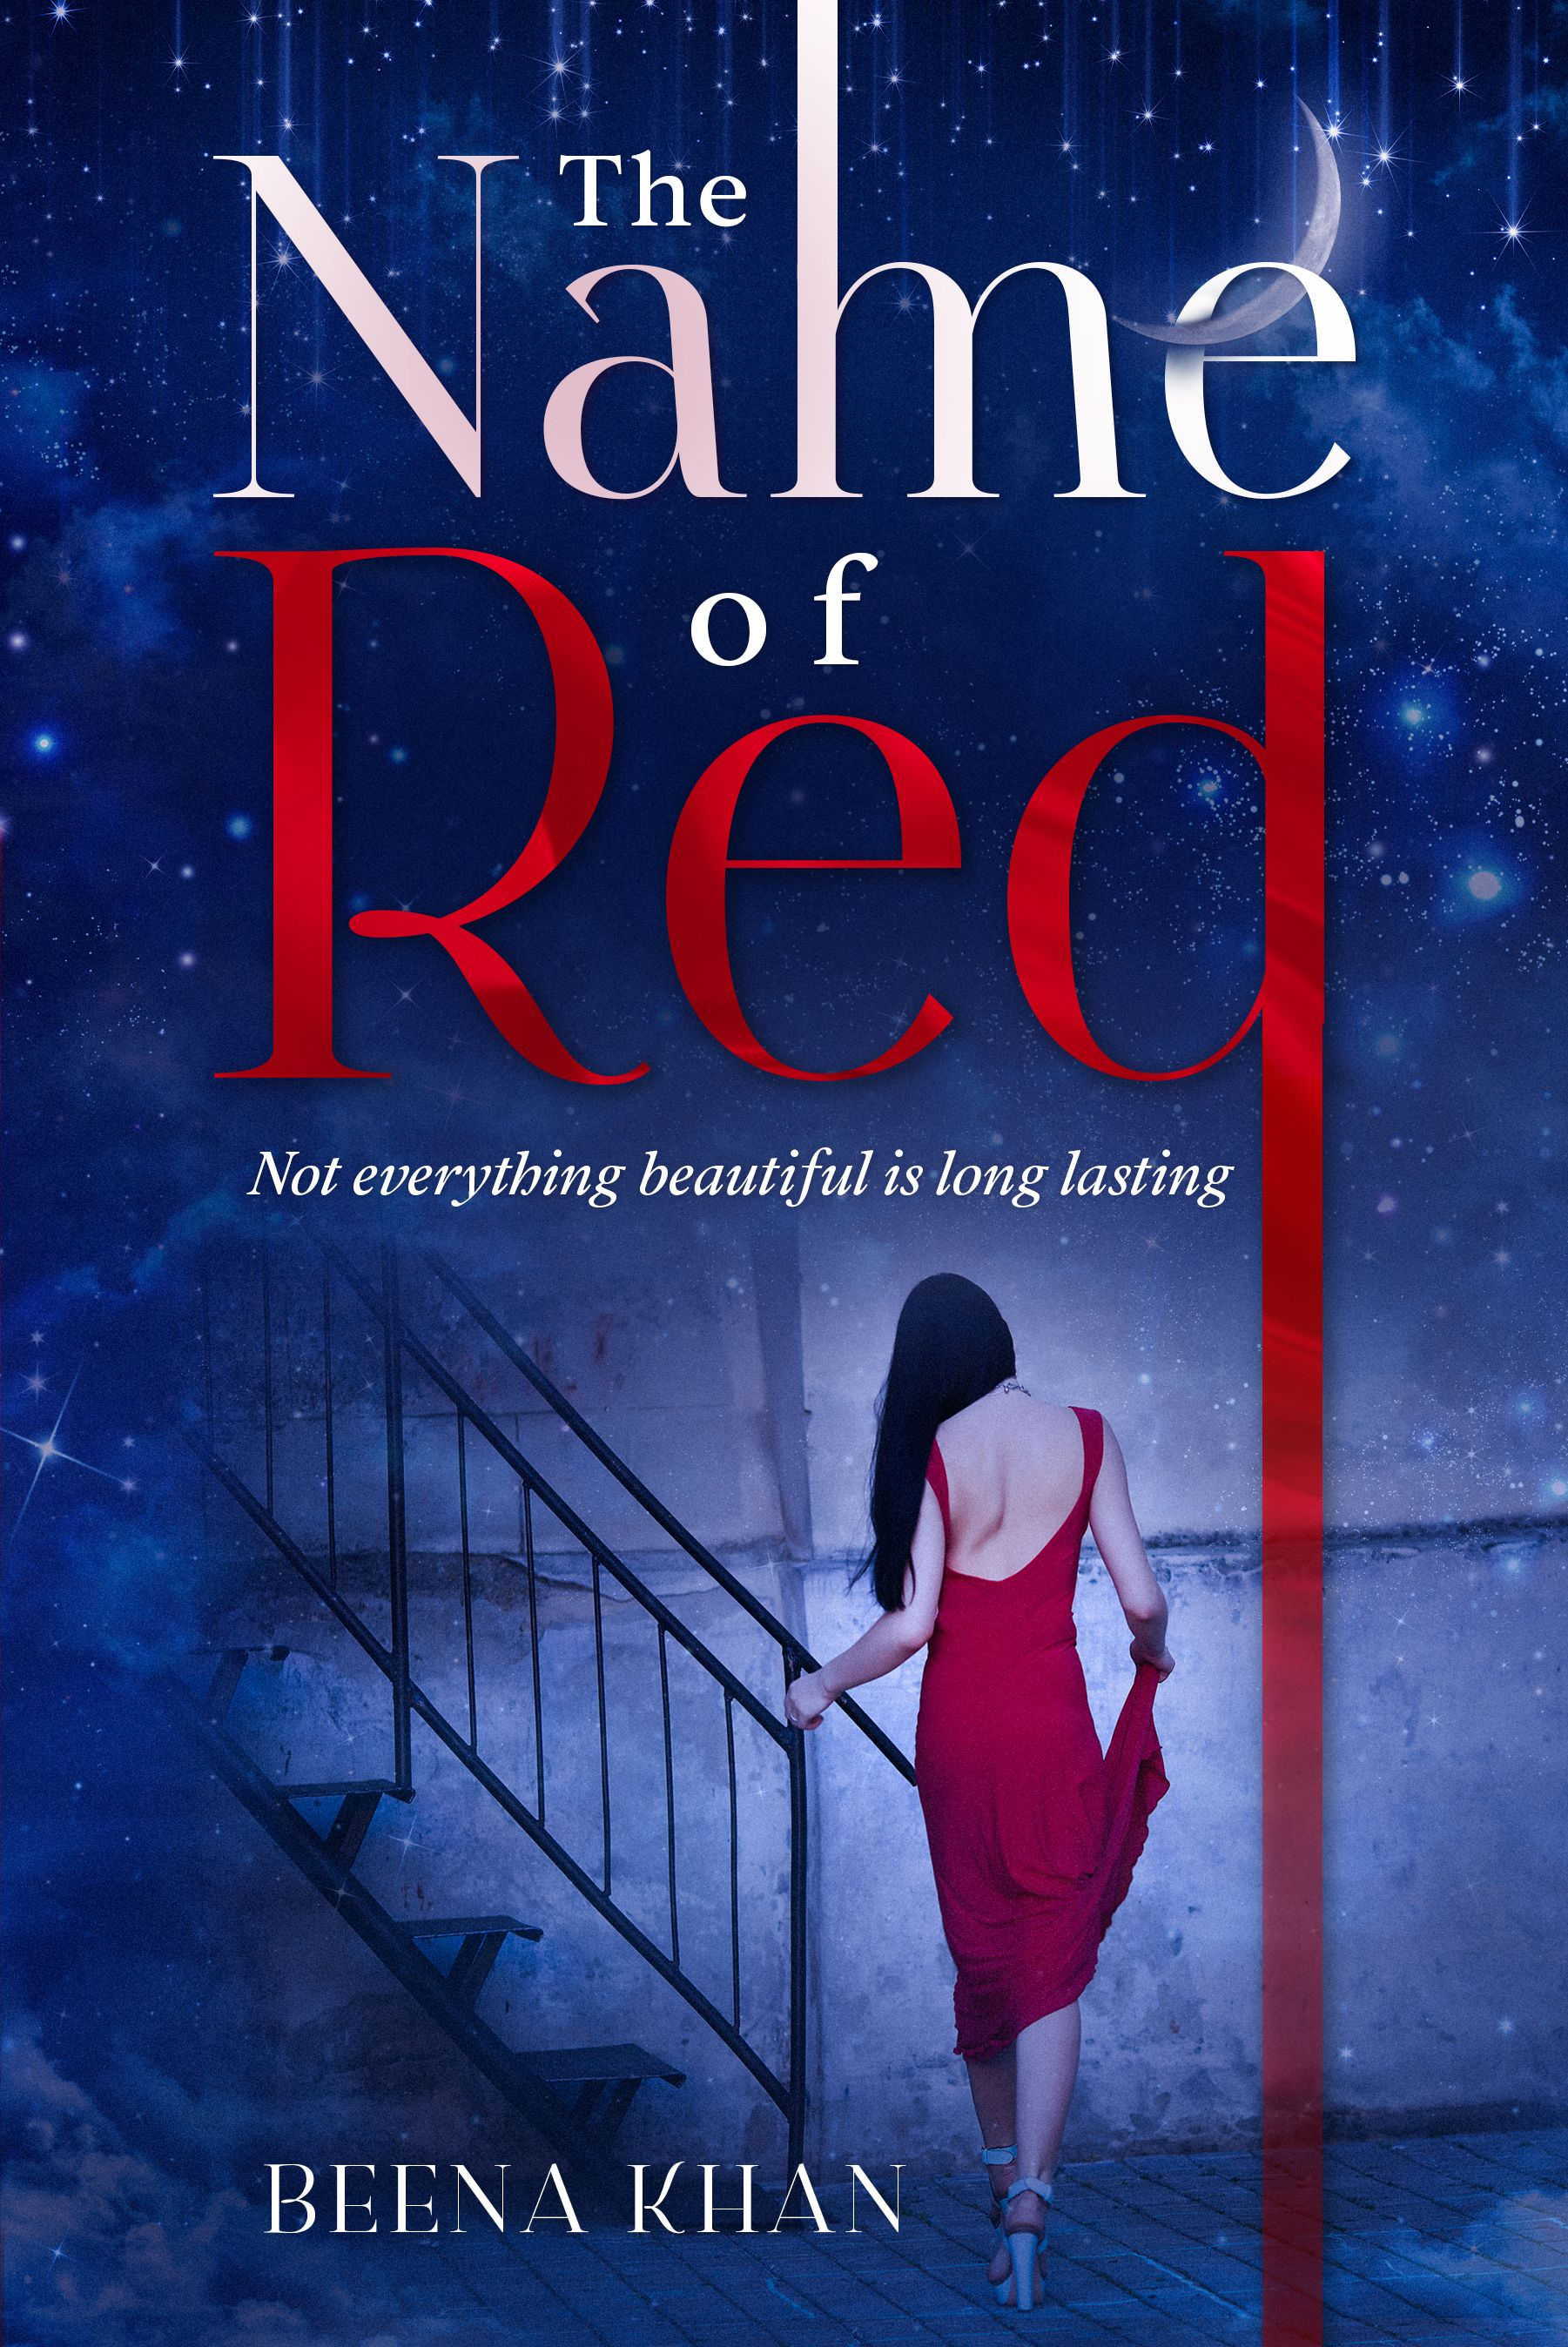 The cover of The Name of Red, by Beena Khan